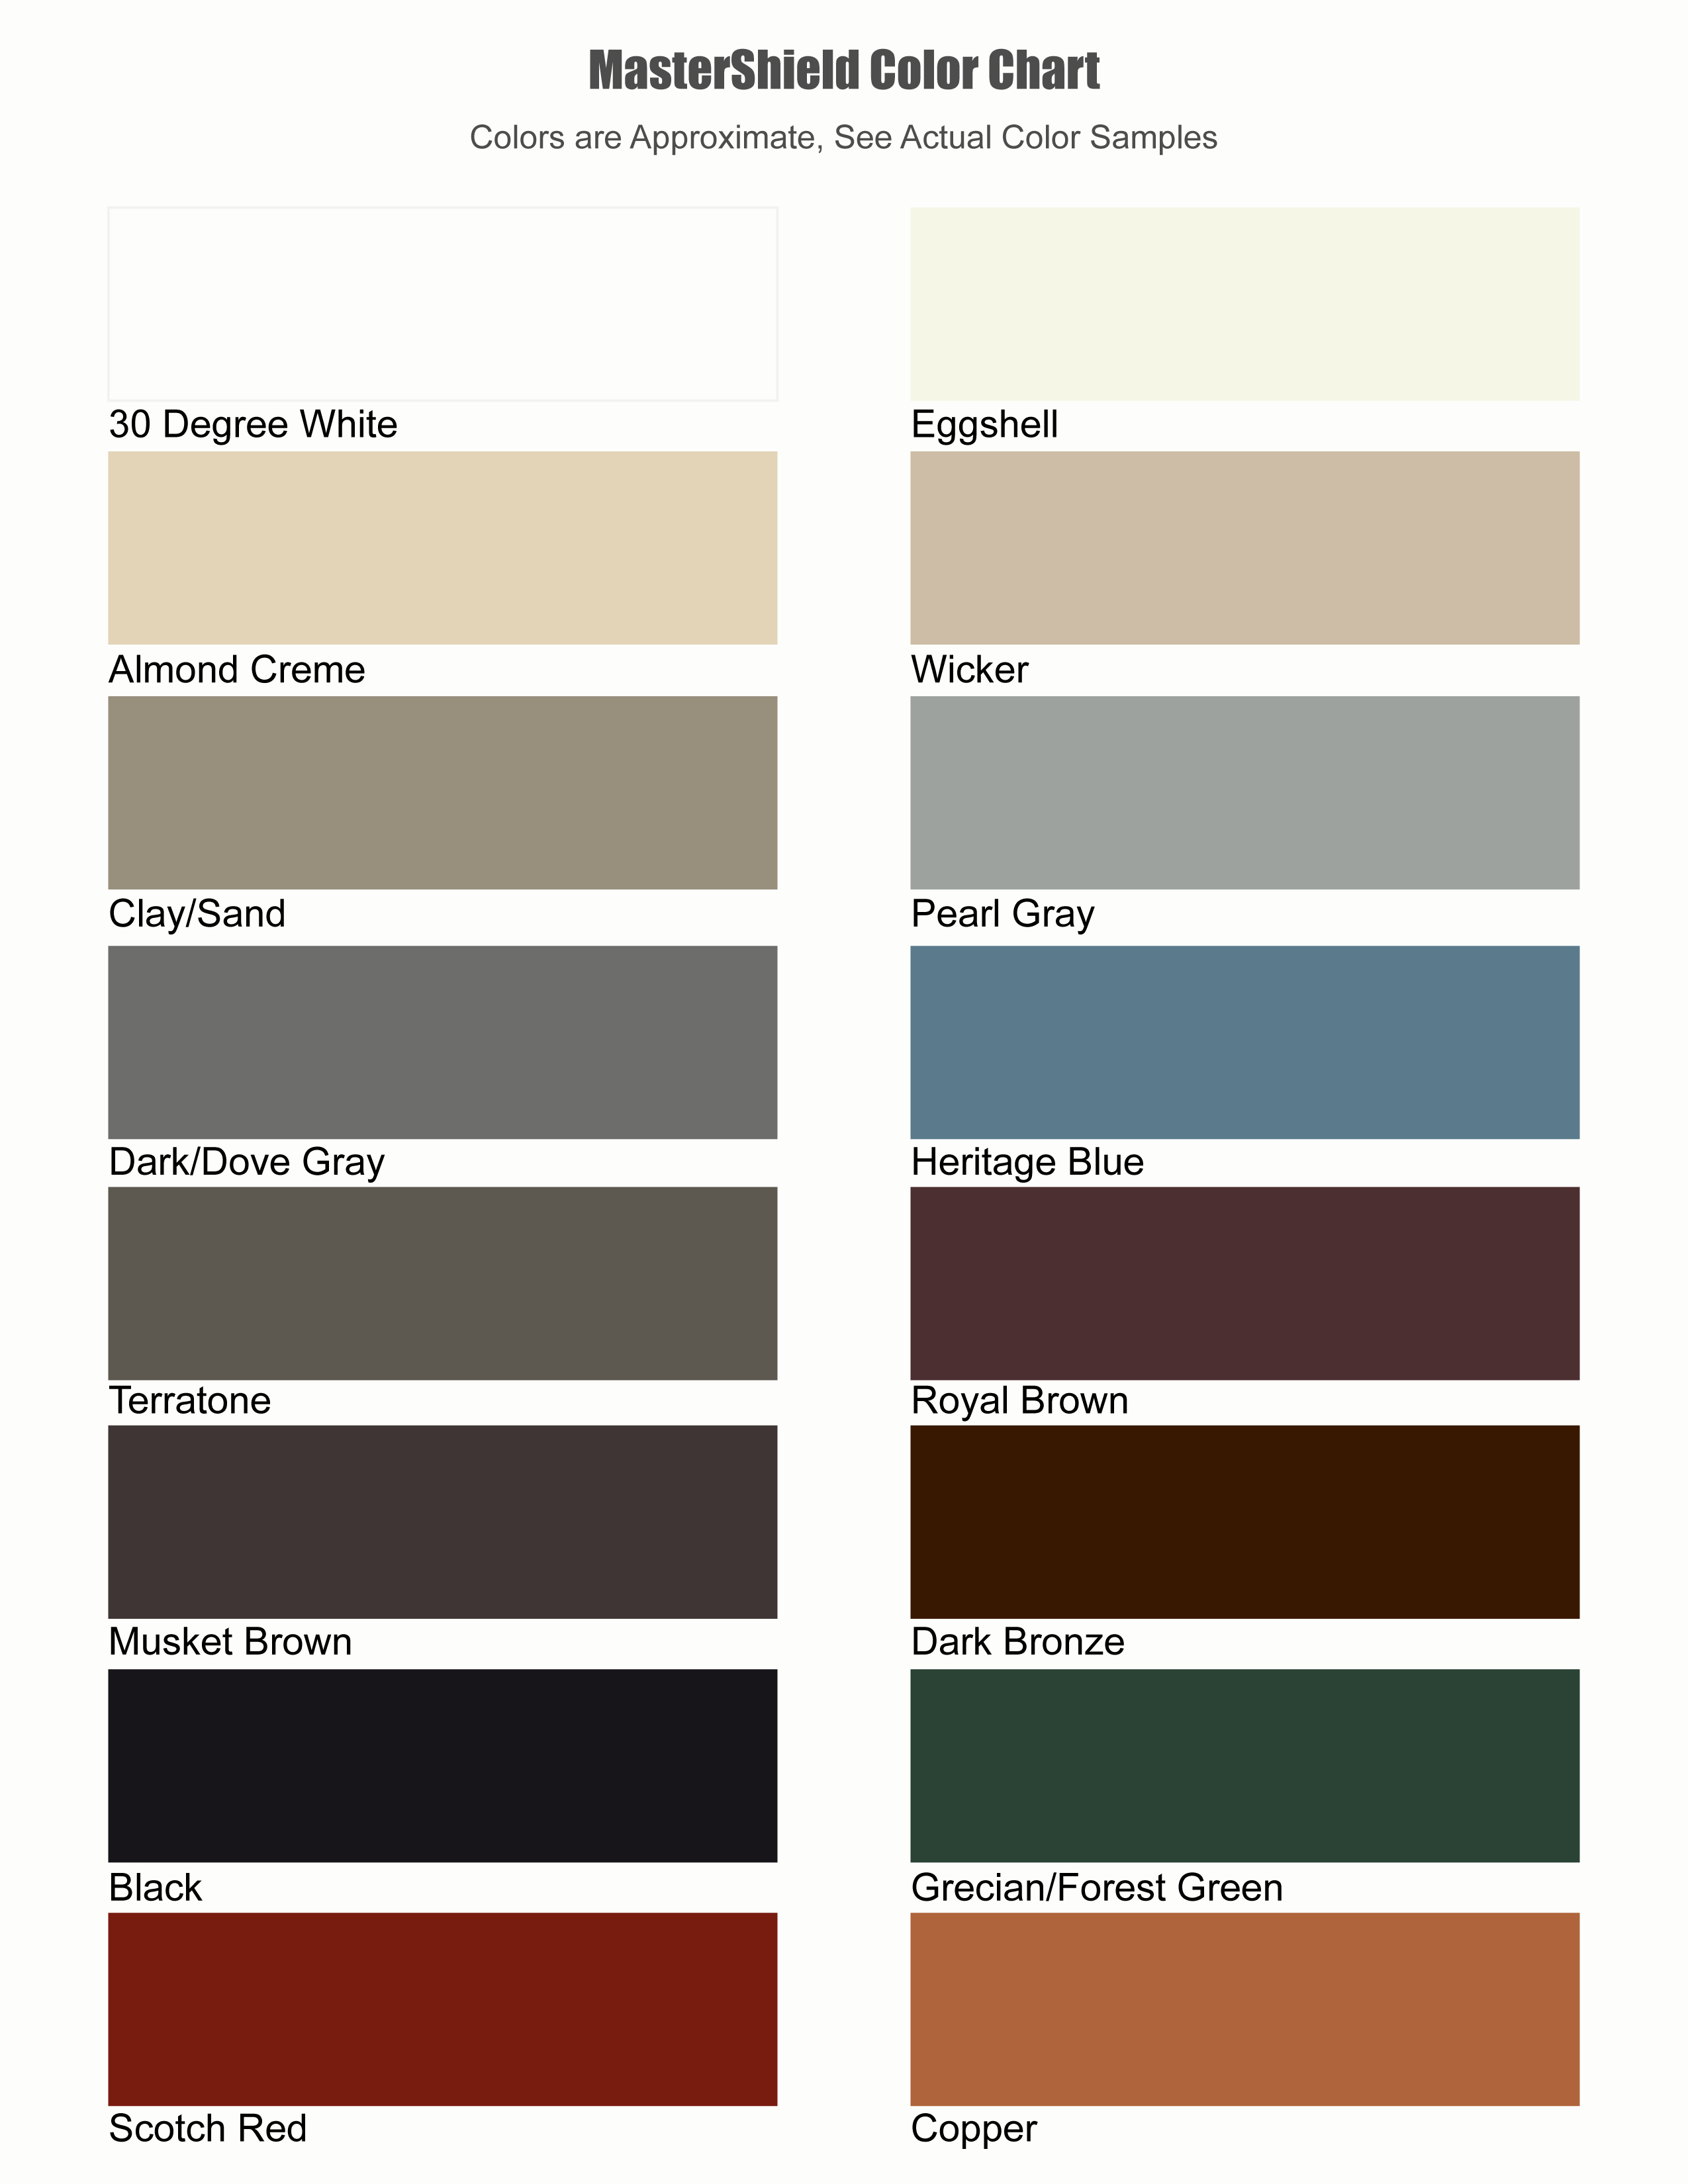 Mastershield Colors Colors For Any Home Copper Available